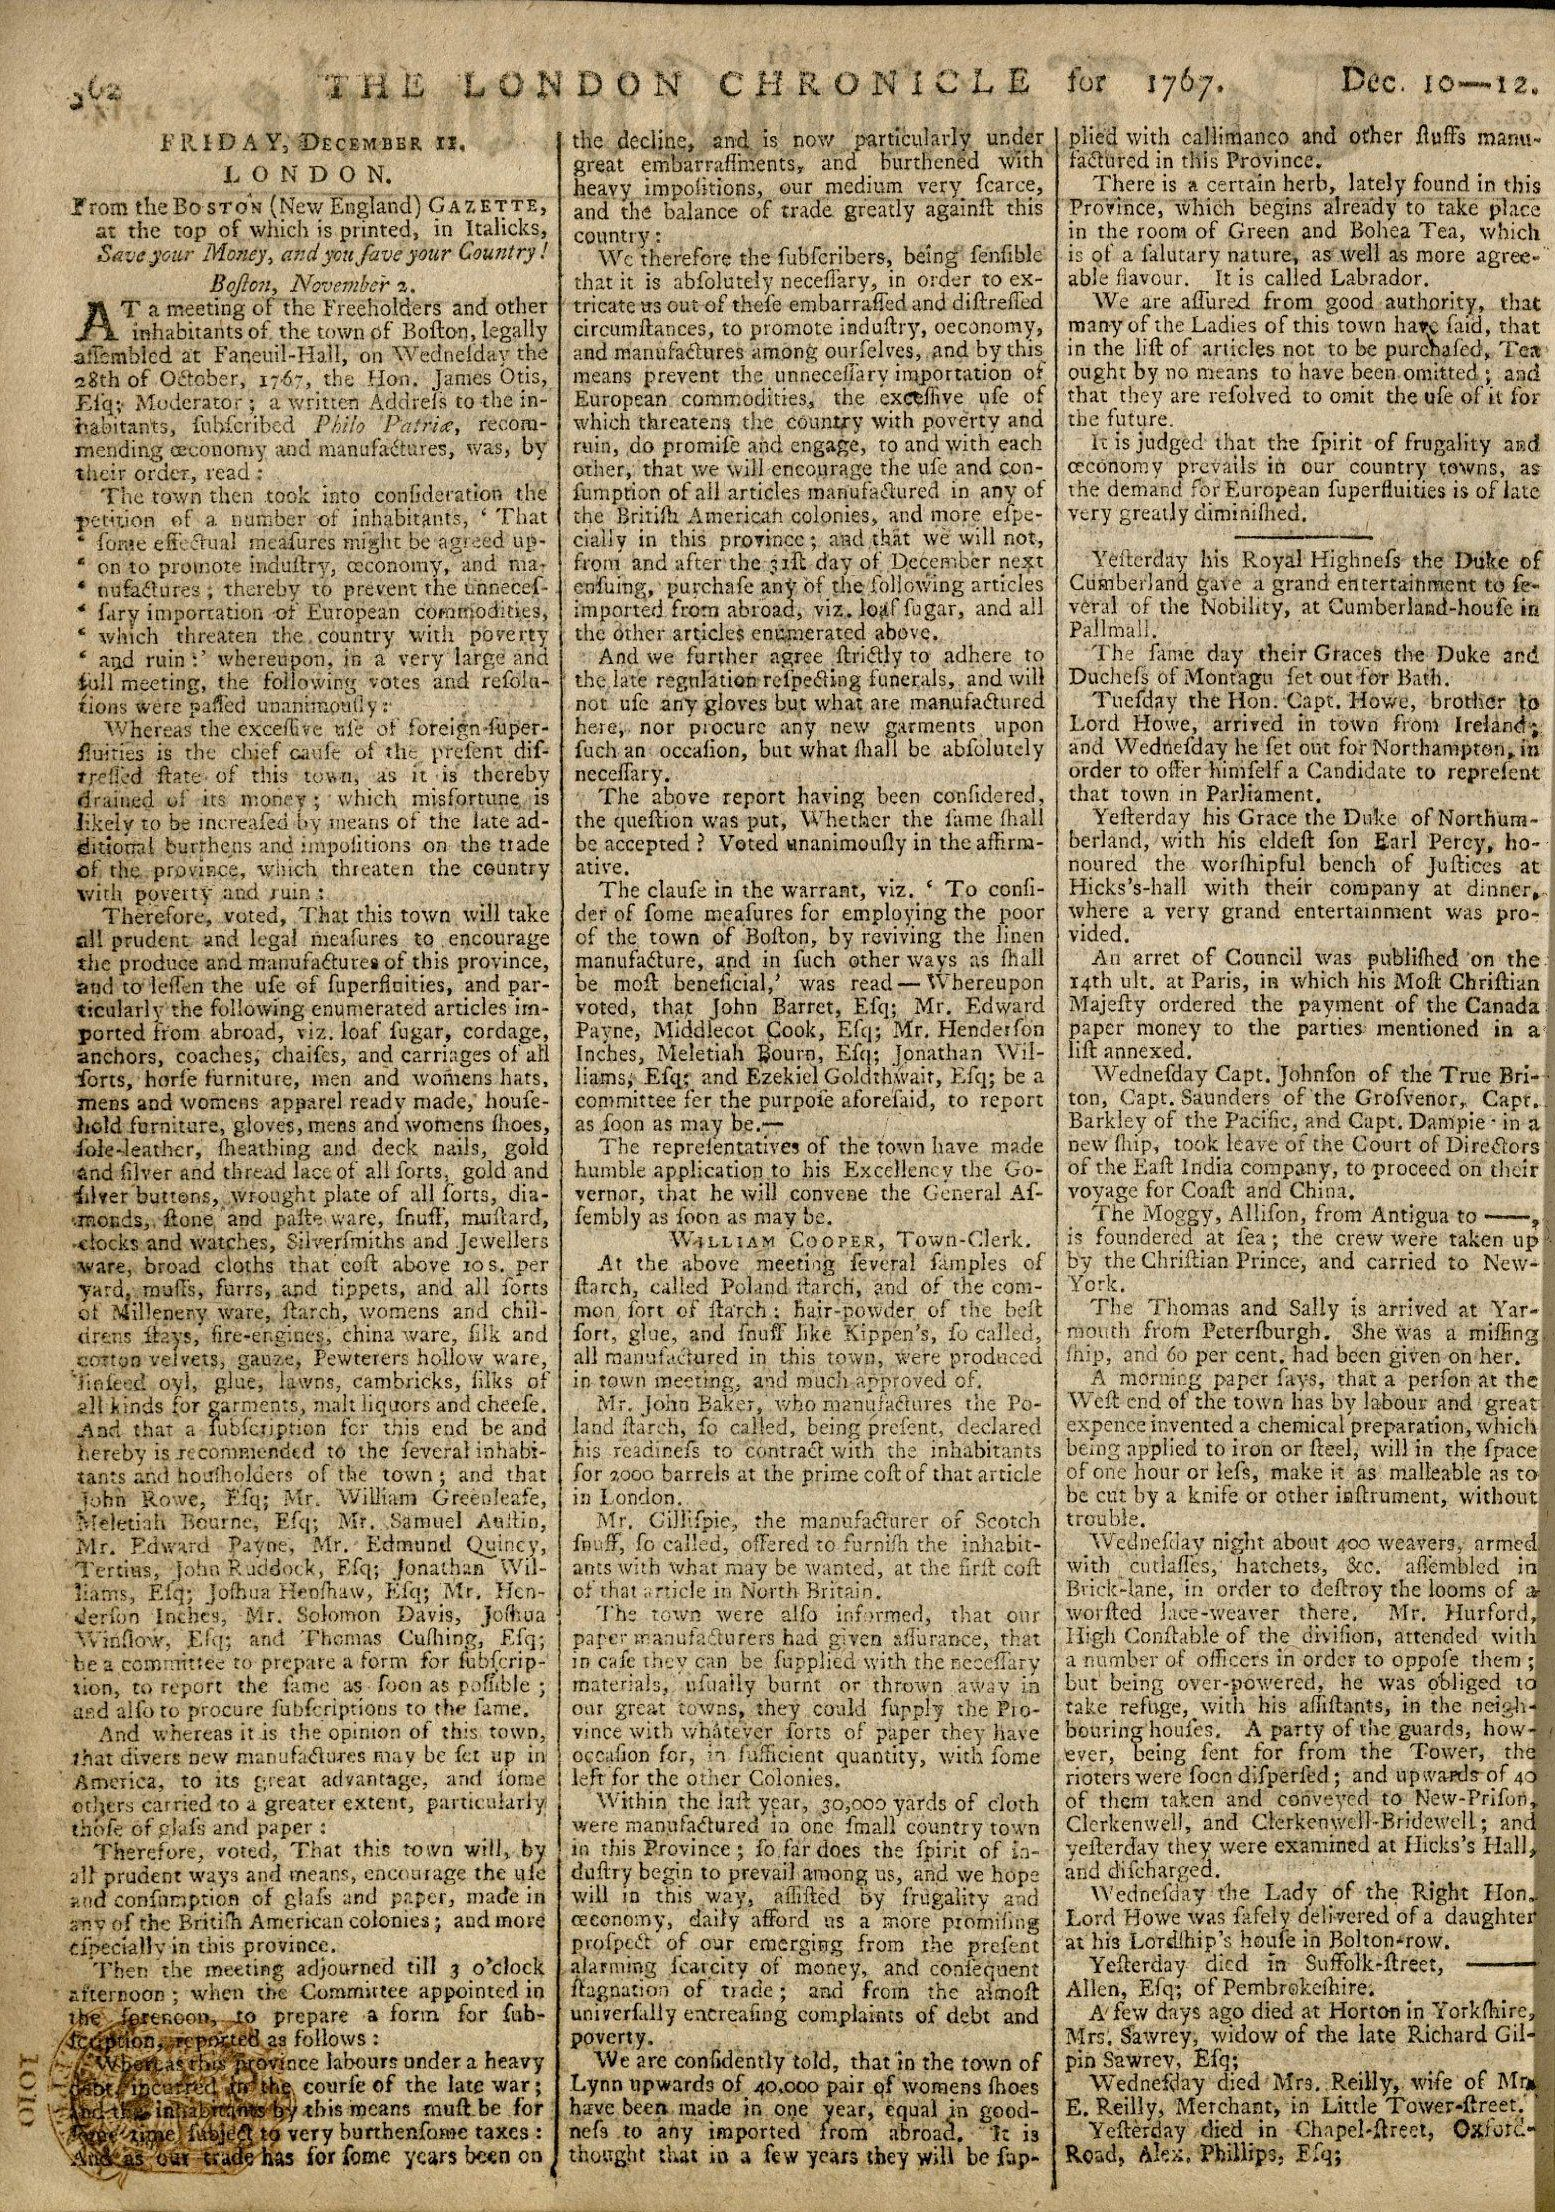 London Chronicle, Dec. 12, 1767. P 51.601